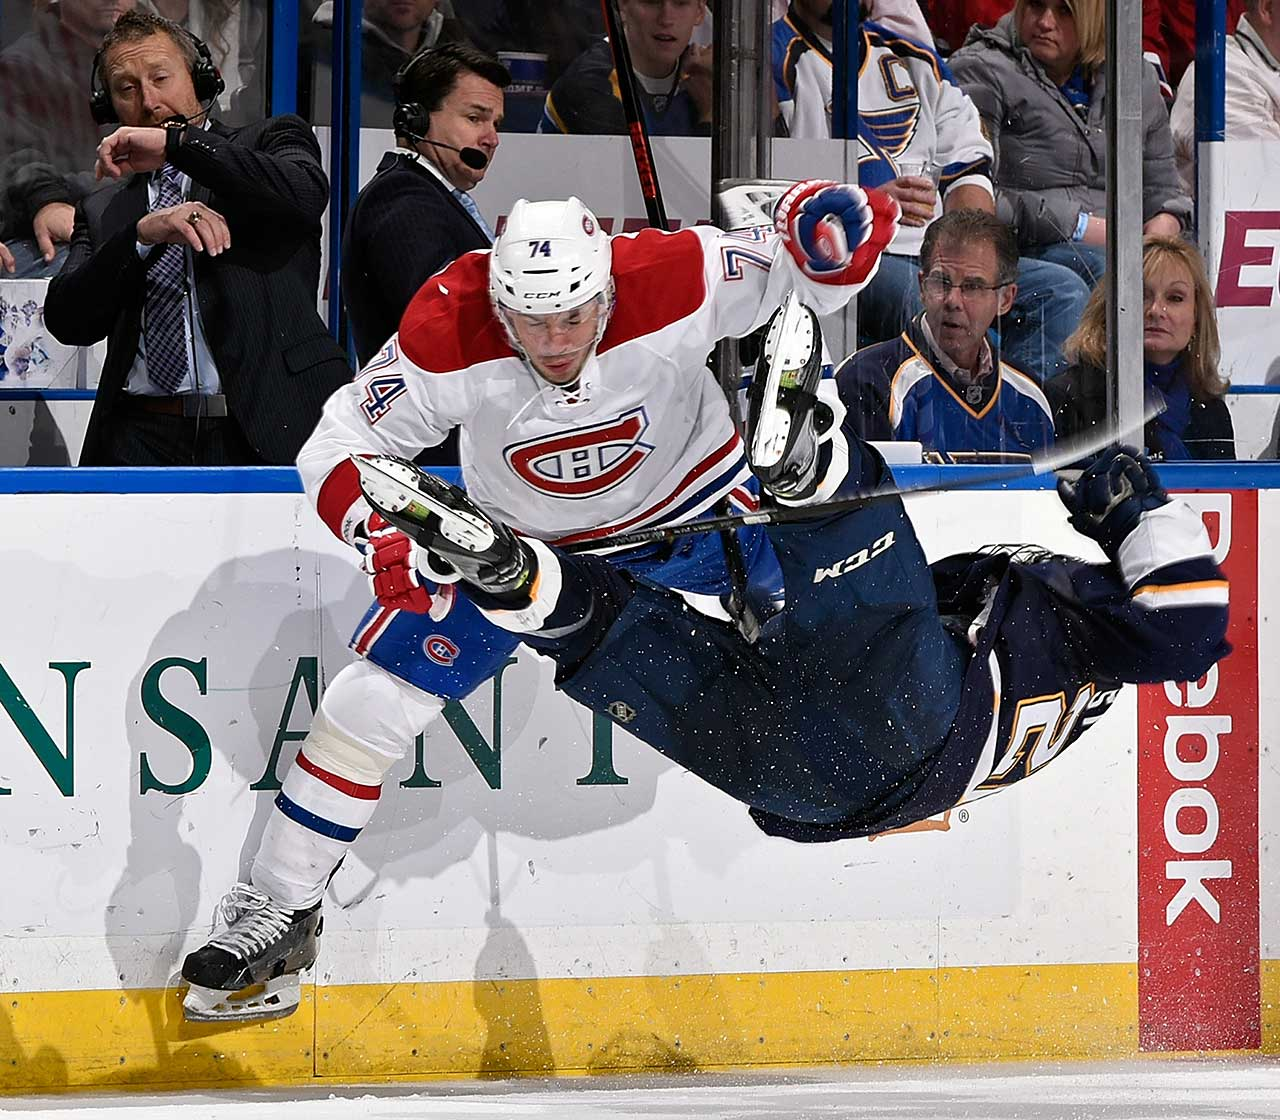 Alexei Emelin of the Montreal Canadiens checks Paul Stastny of the St. Louis Blues at the Scottrade Center in St. Louis.